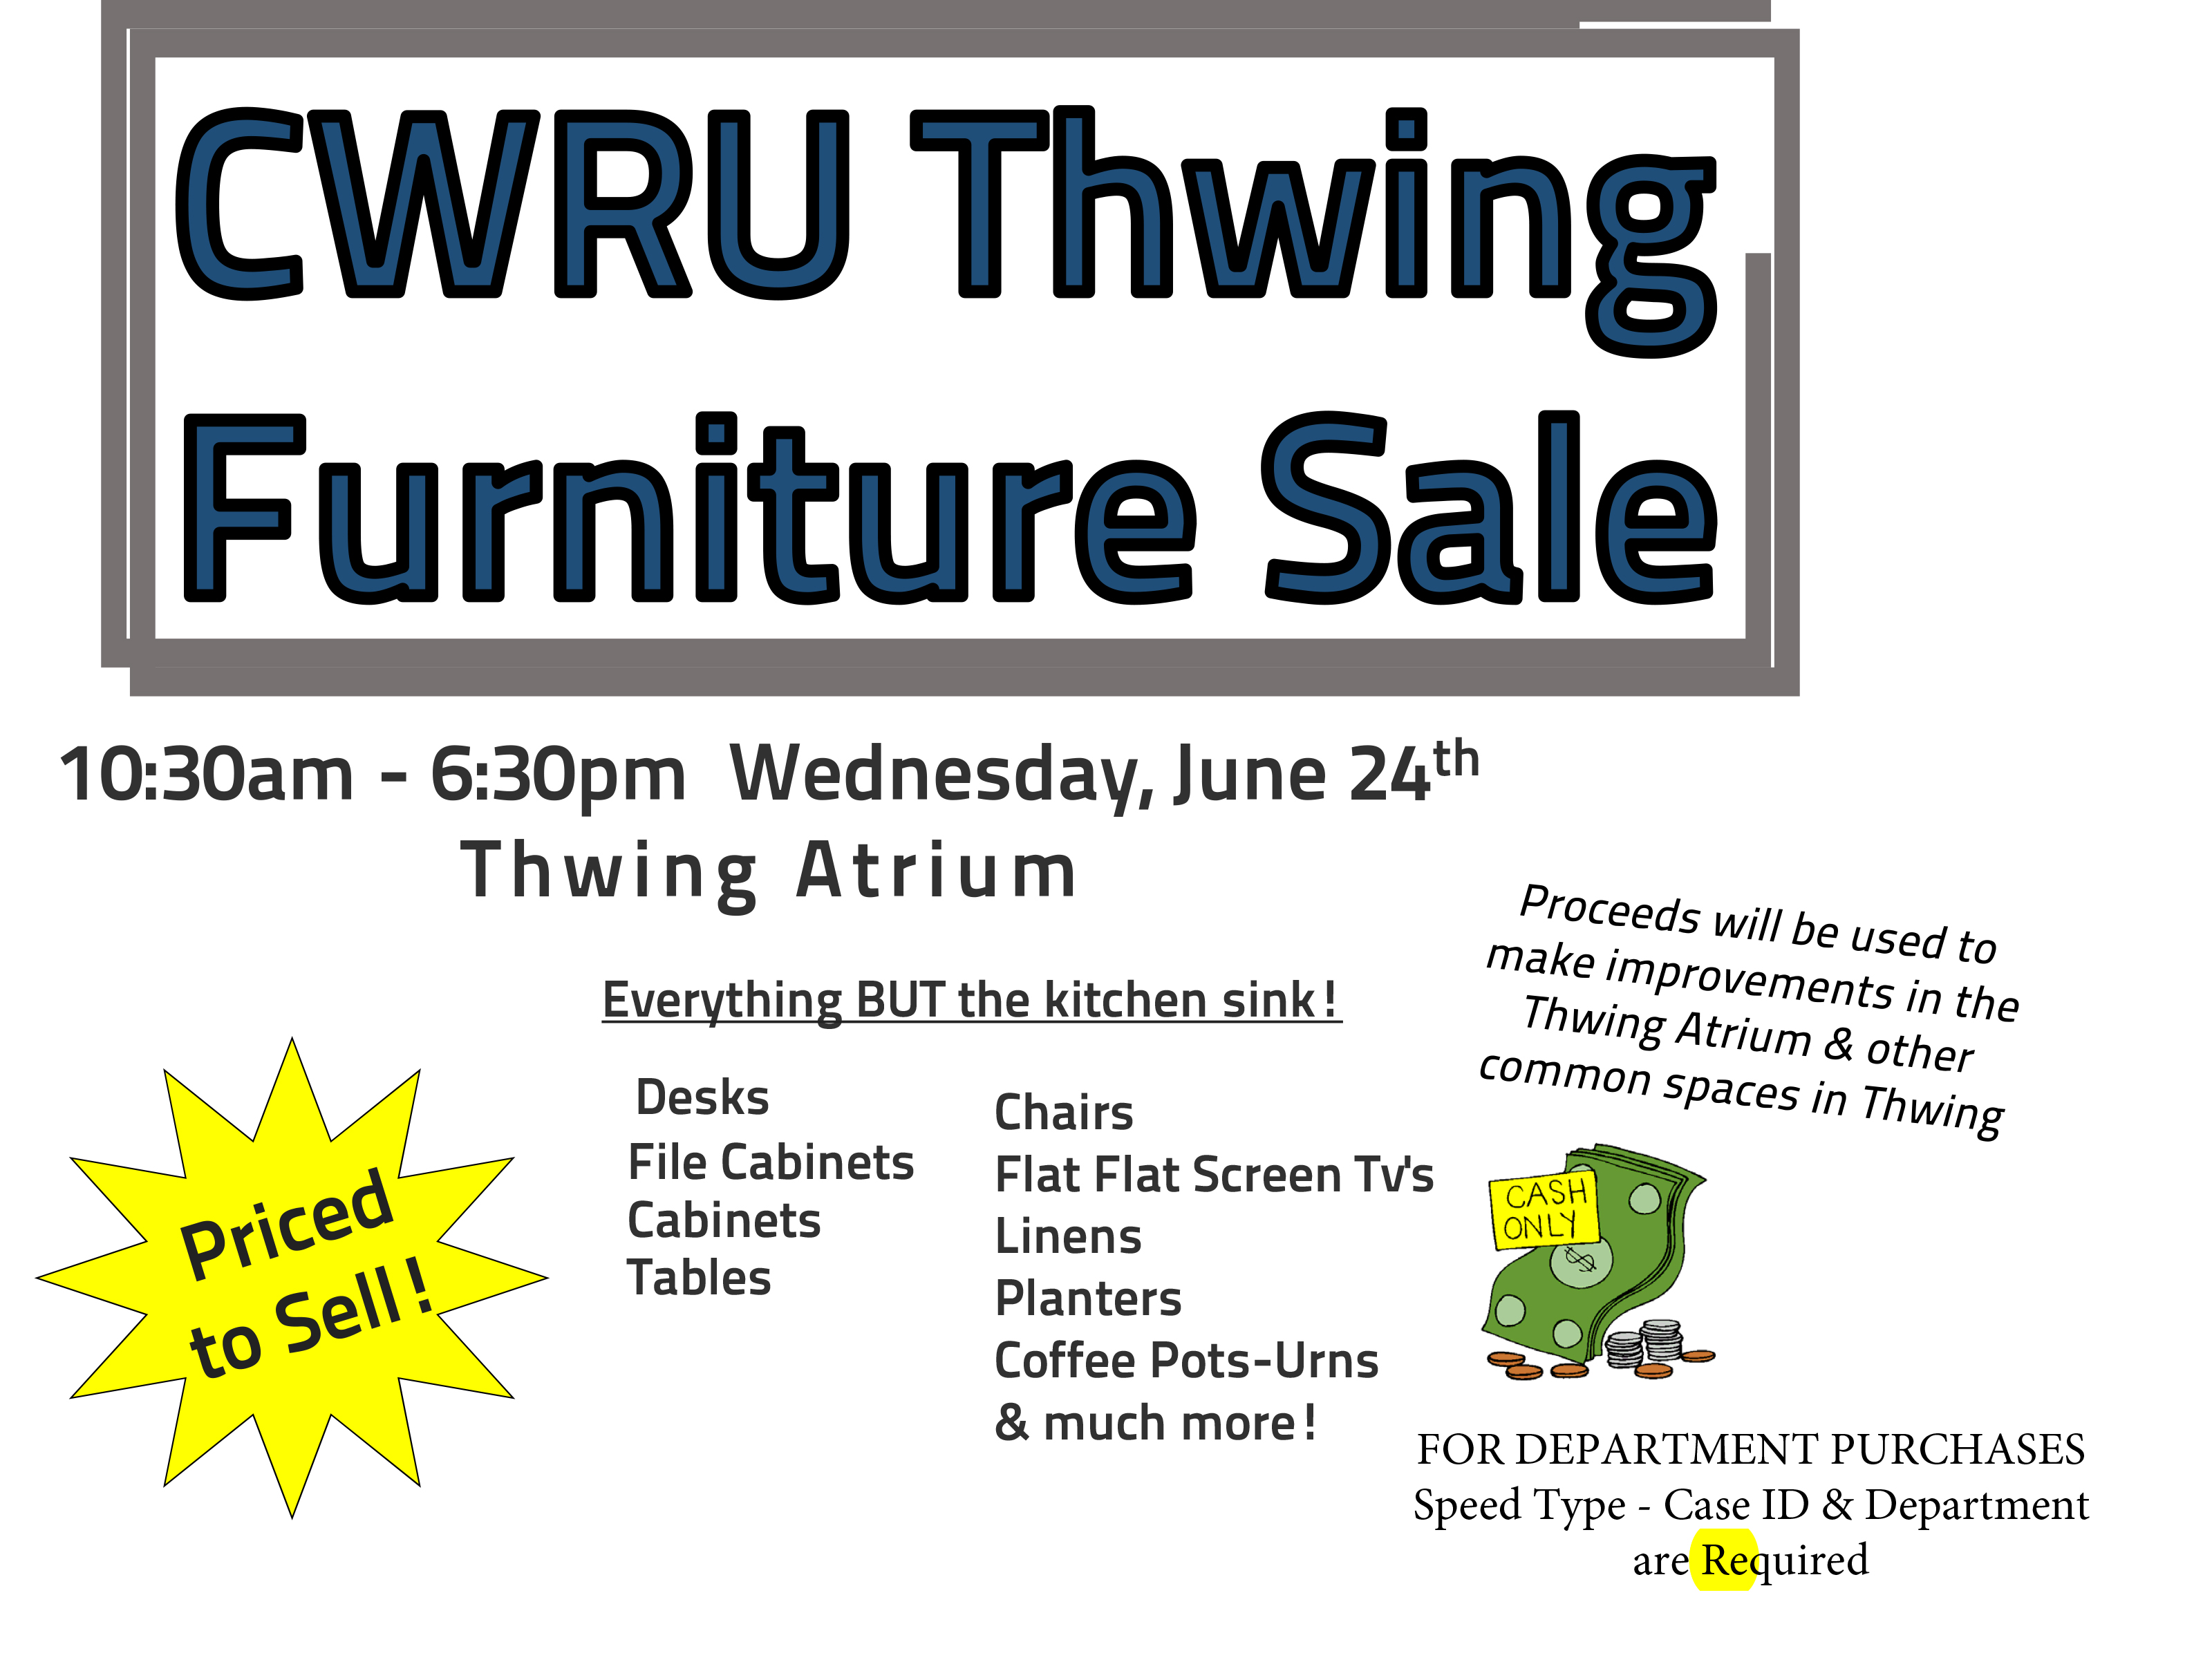 furniture sale to be held in thwing atrium june 24 the daily